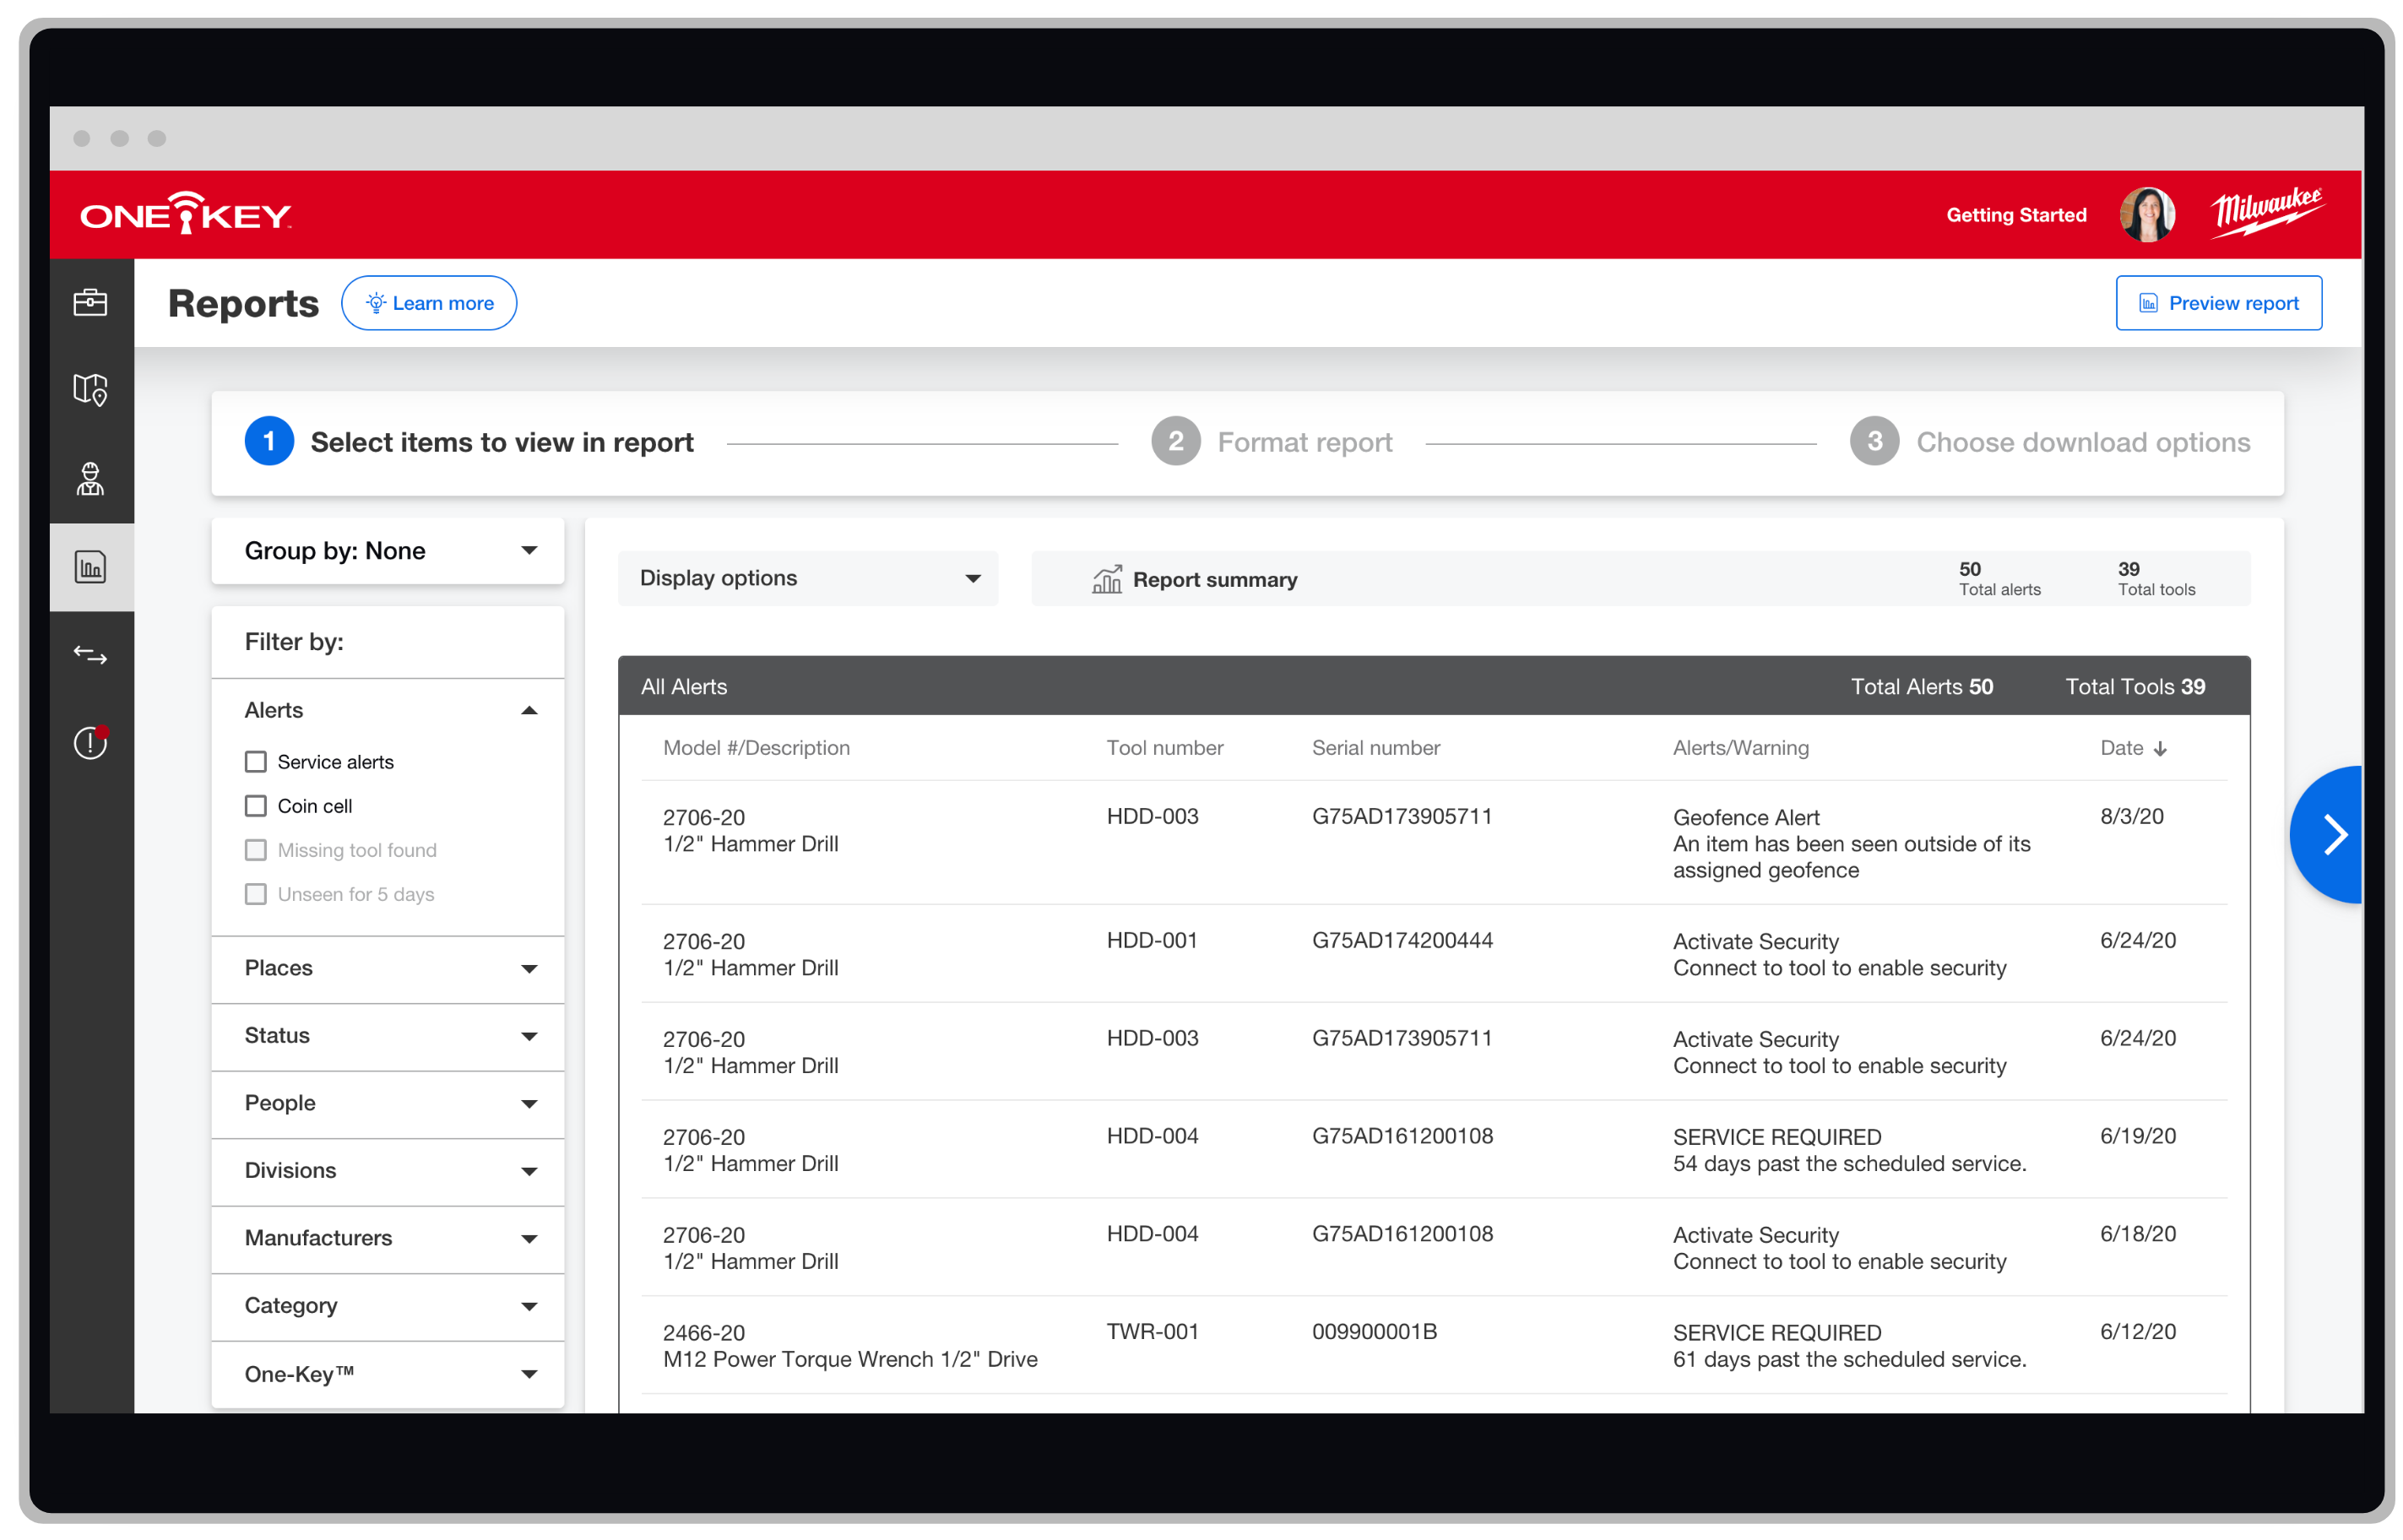 Screen shows One-Key inventory management app, which allows you to generate custom reports for your tool alerts